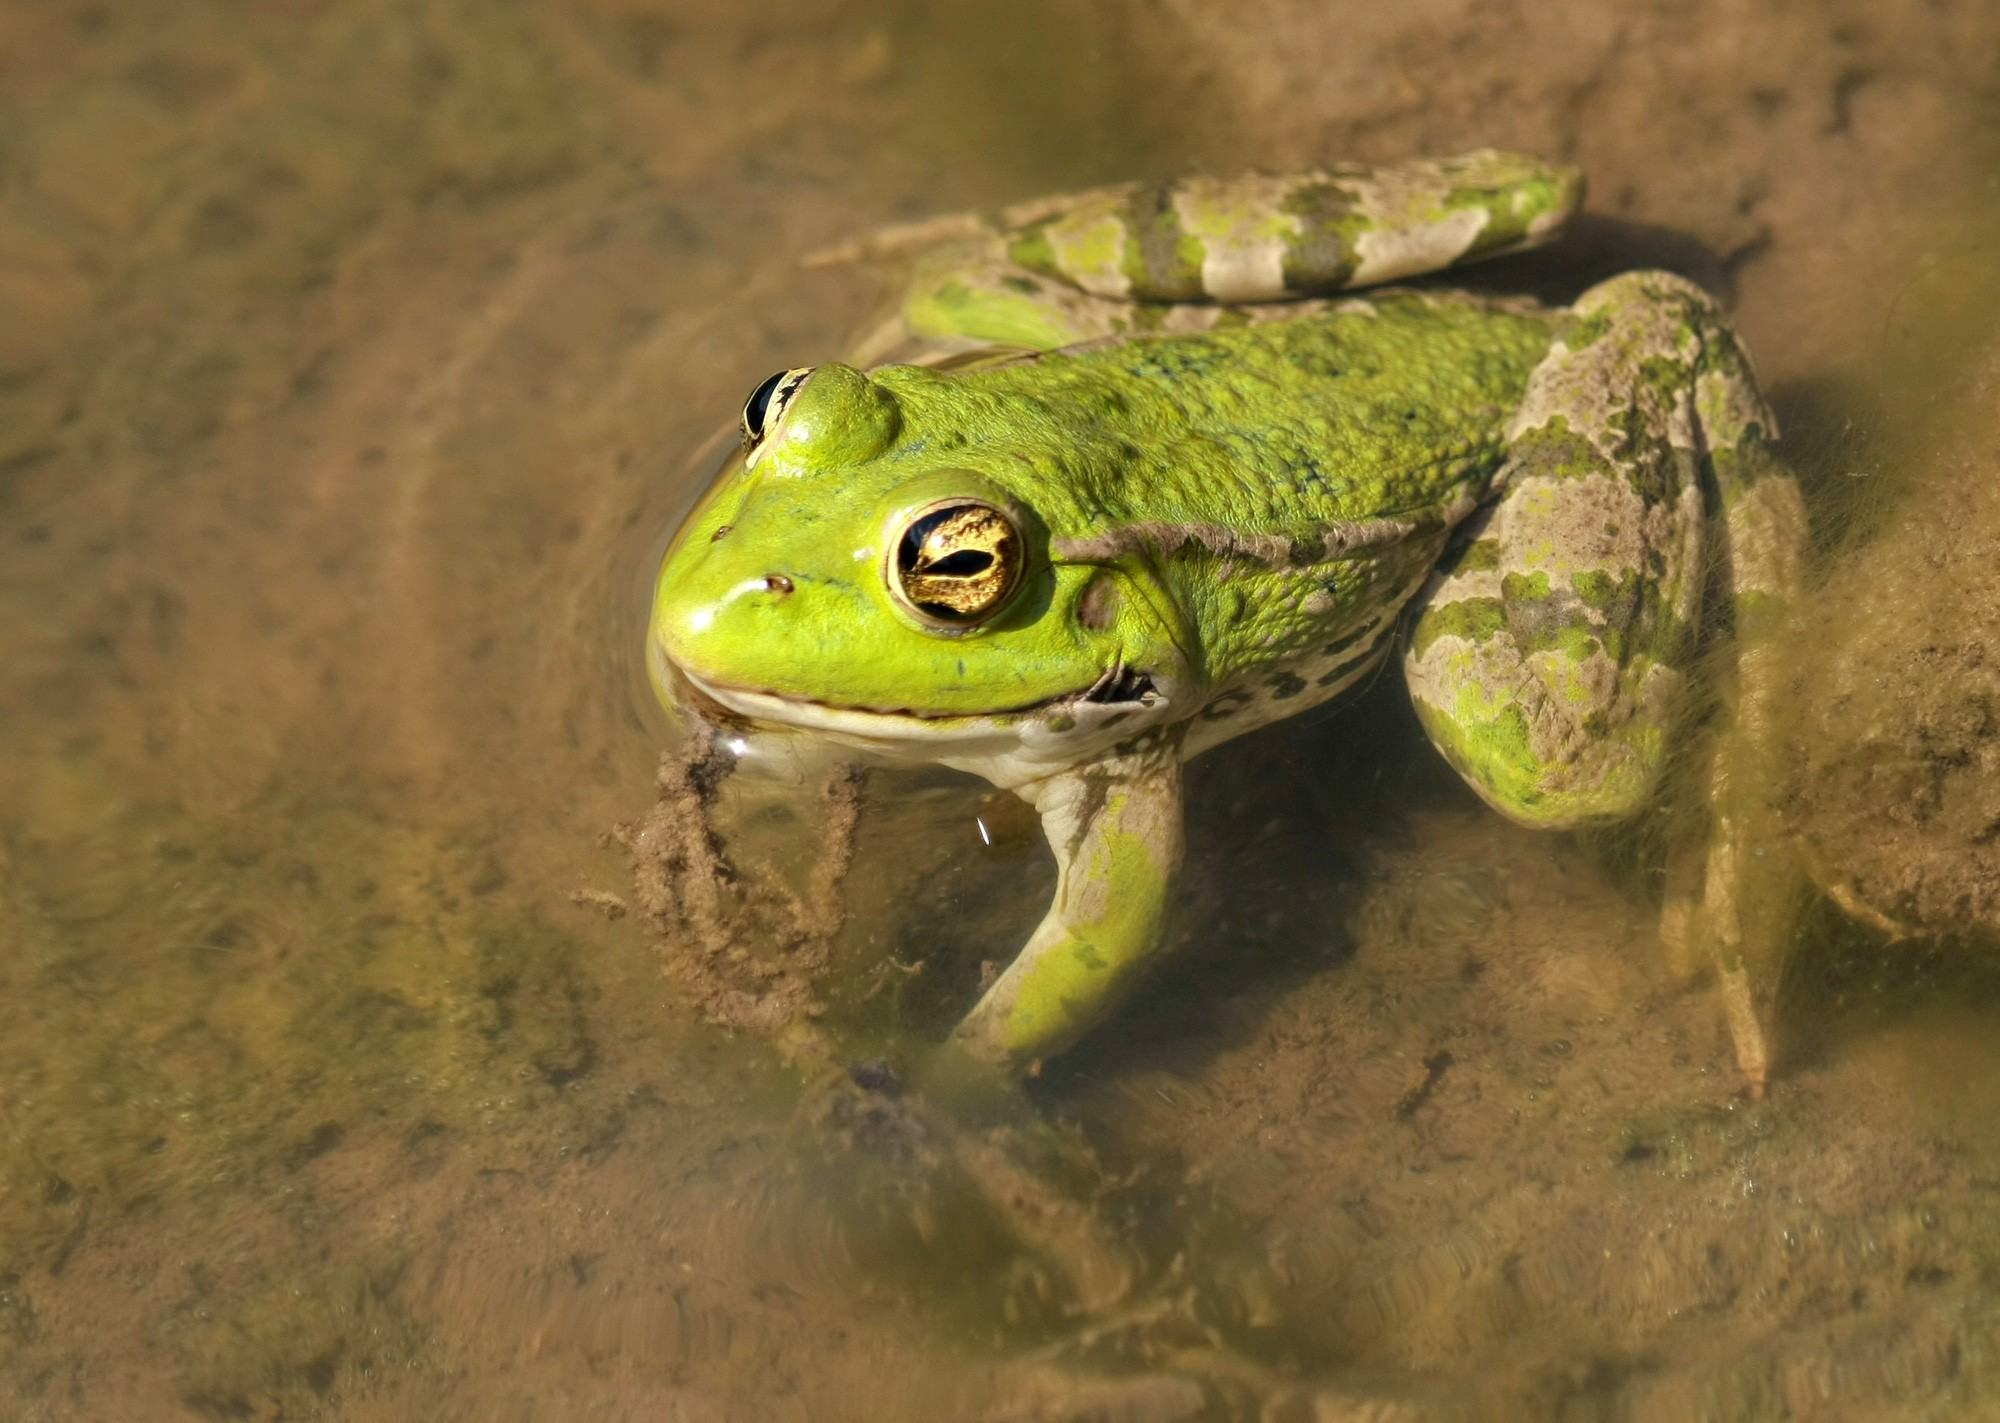 Green Frog on Mud